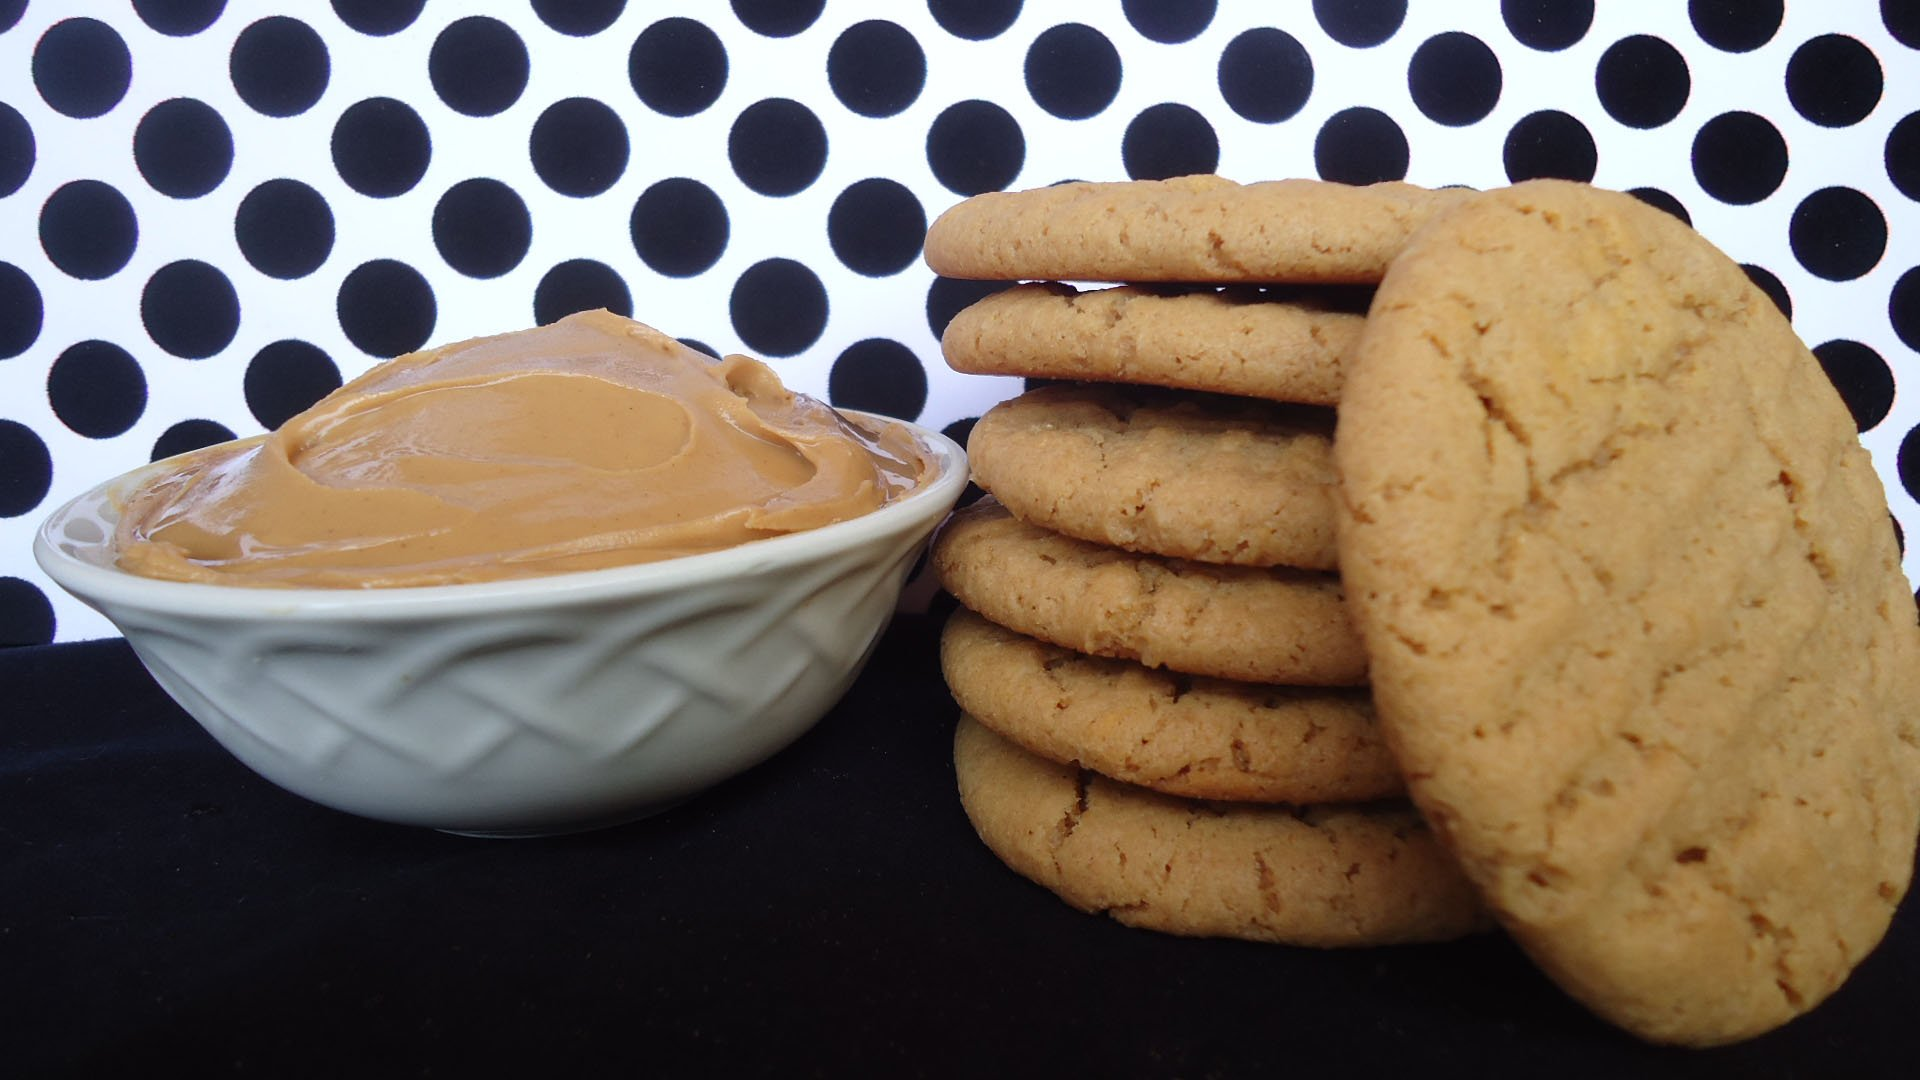 Chubby Babies Peanut Butter Oatmeal Lactation Cookie Mix - 1 Mix (makes 24 cookies)